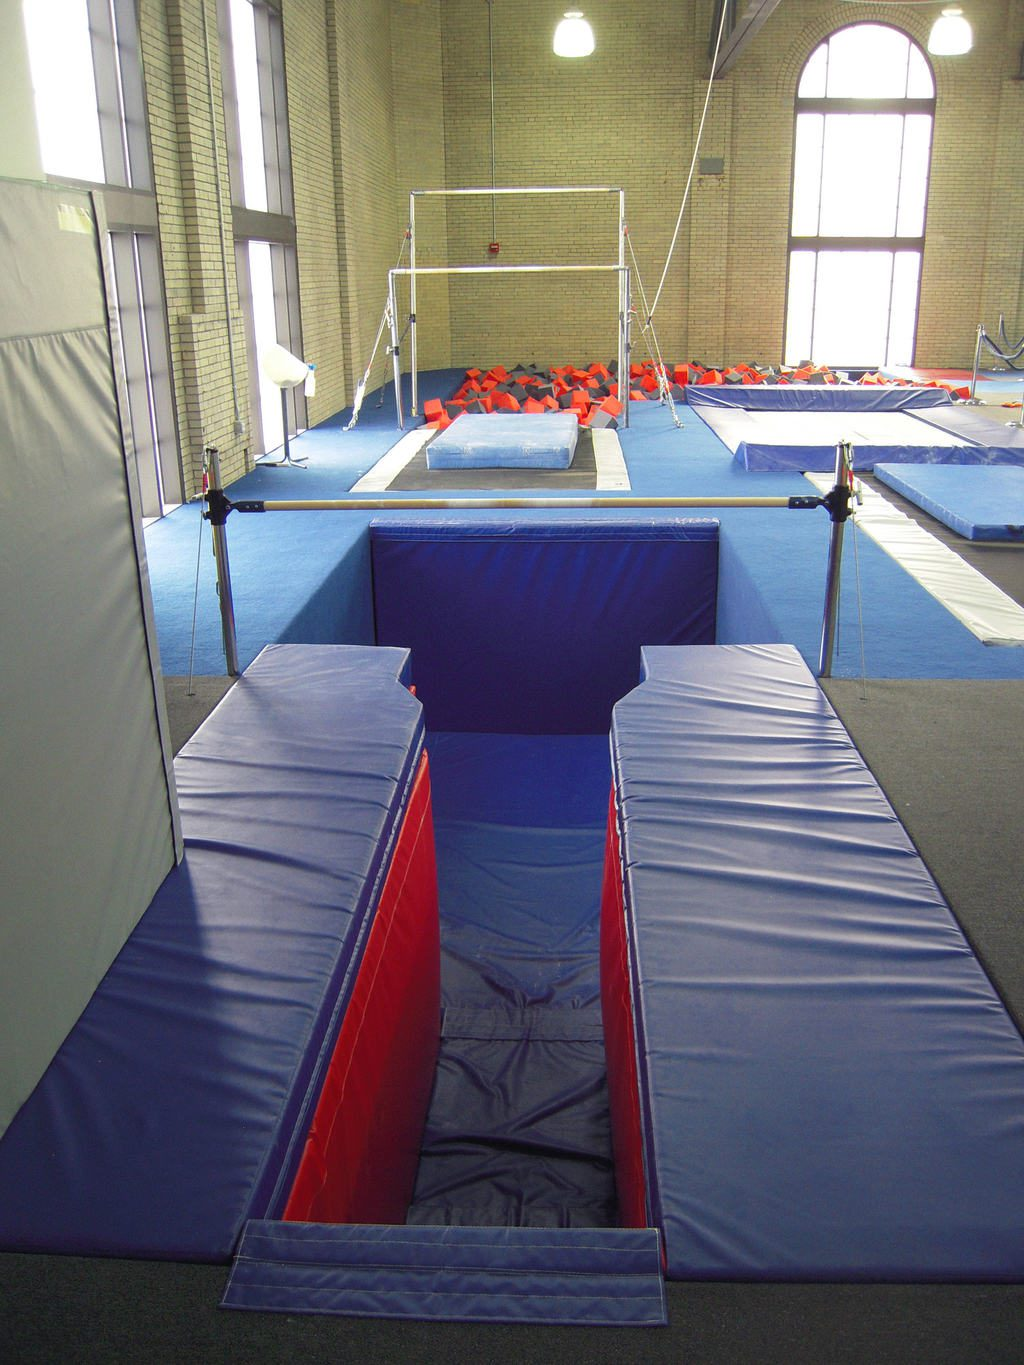 Gymnastics Gym University of Pennsylvania Custom Designed Mat